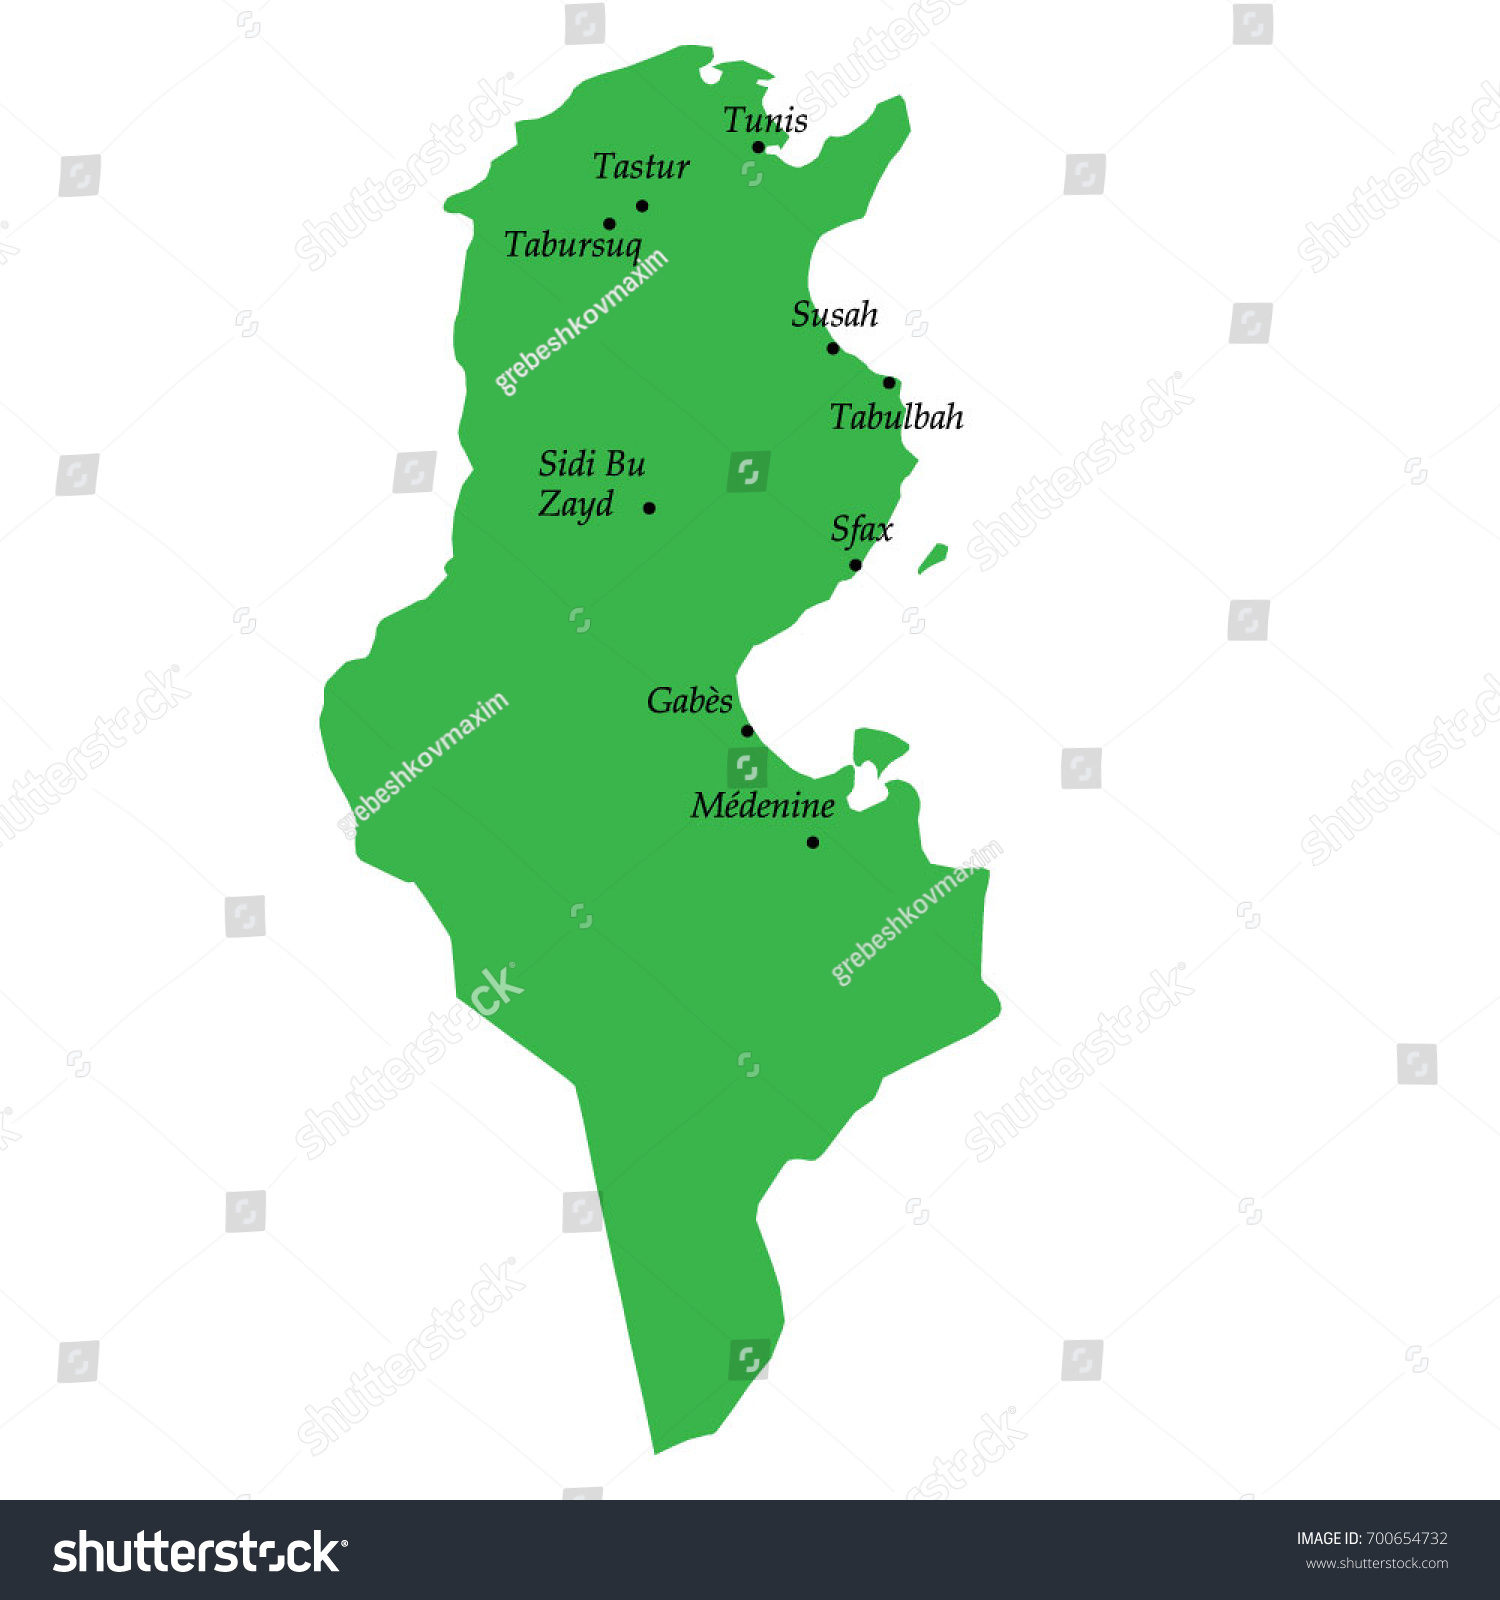 Map Tunisia Main Cities Stock Vector (Royalty Free) 700654732 ...